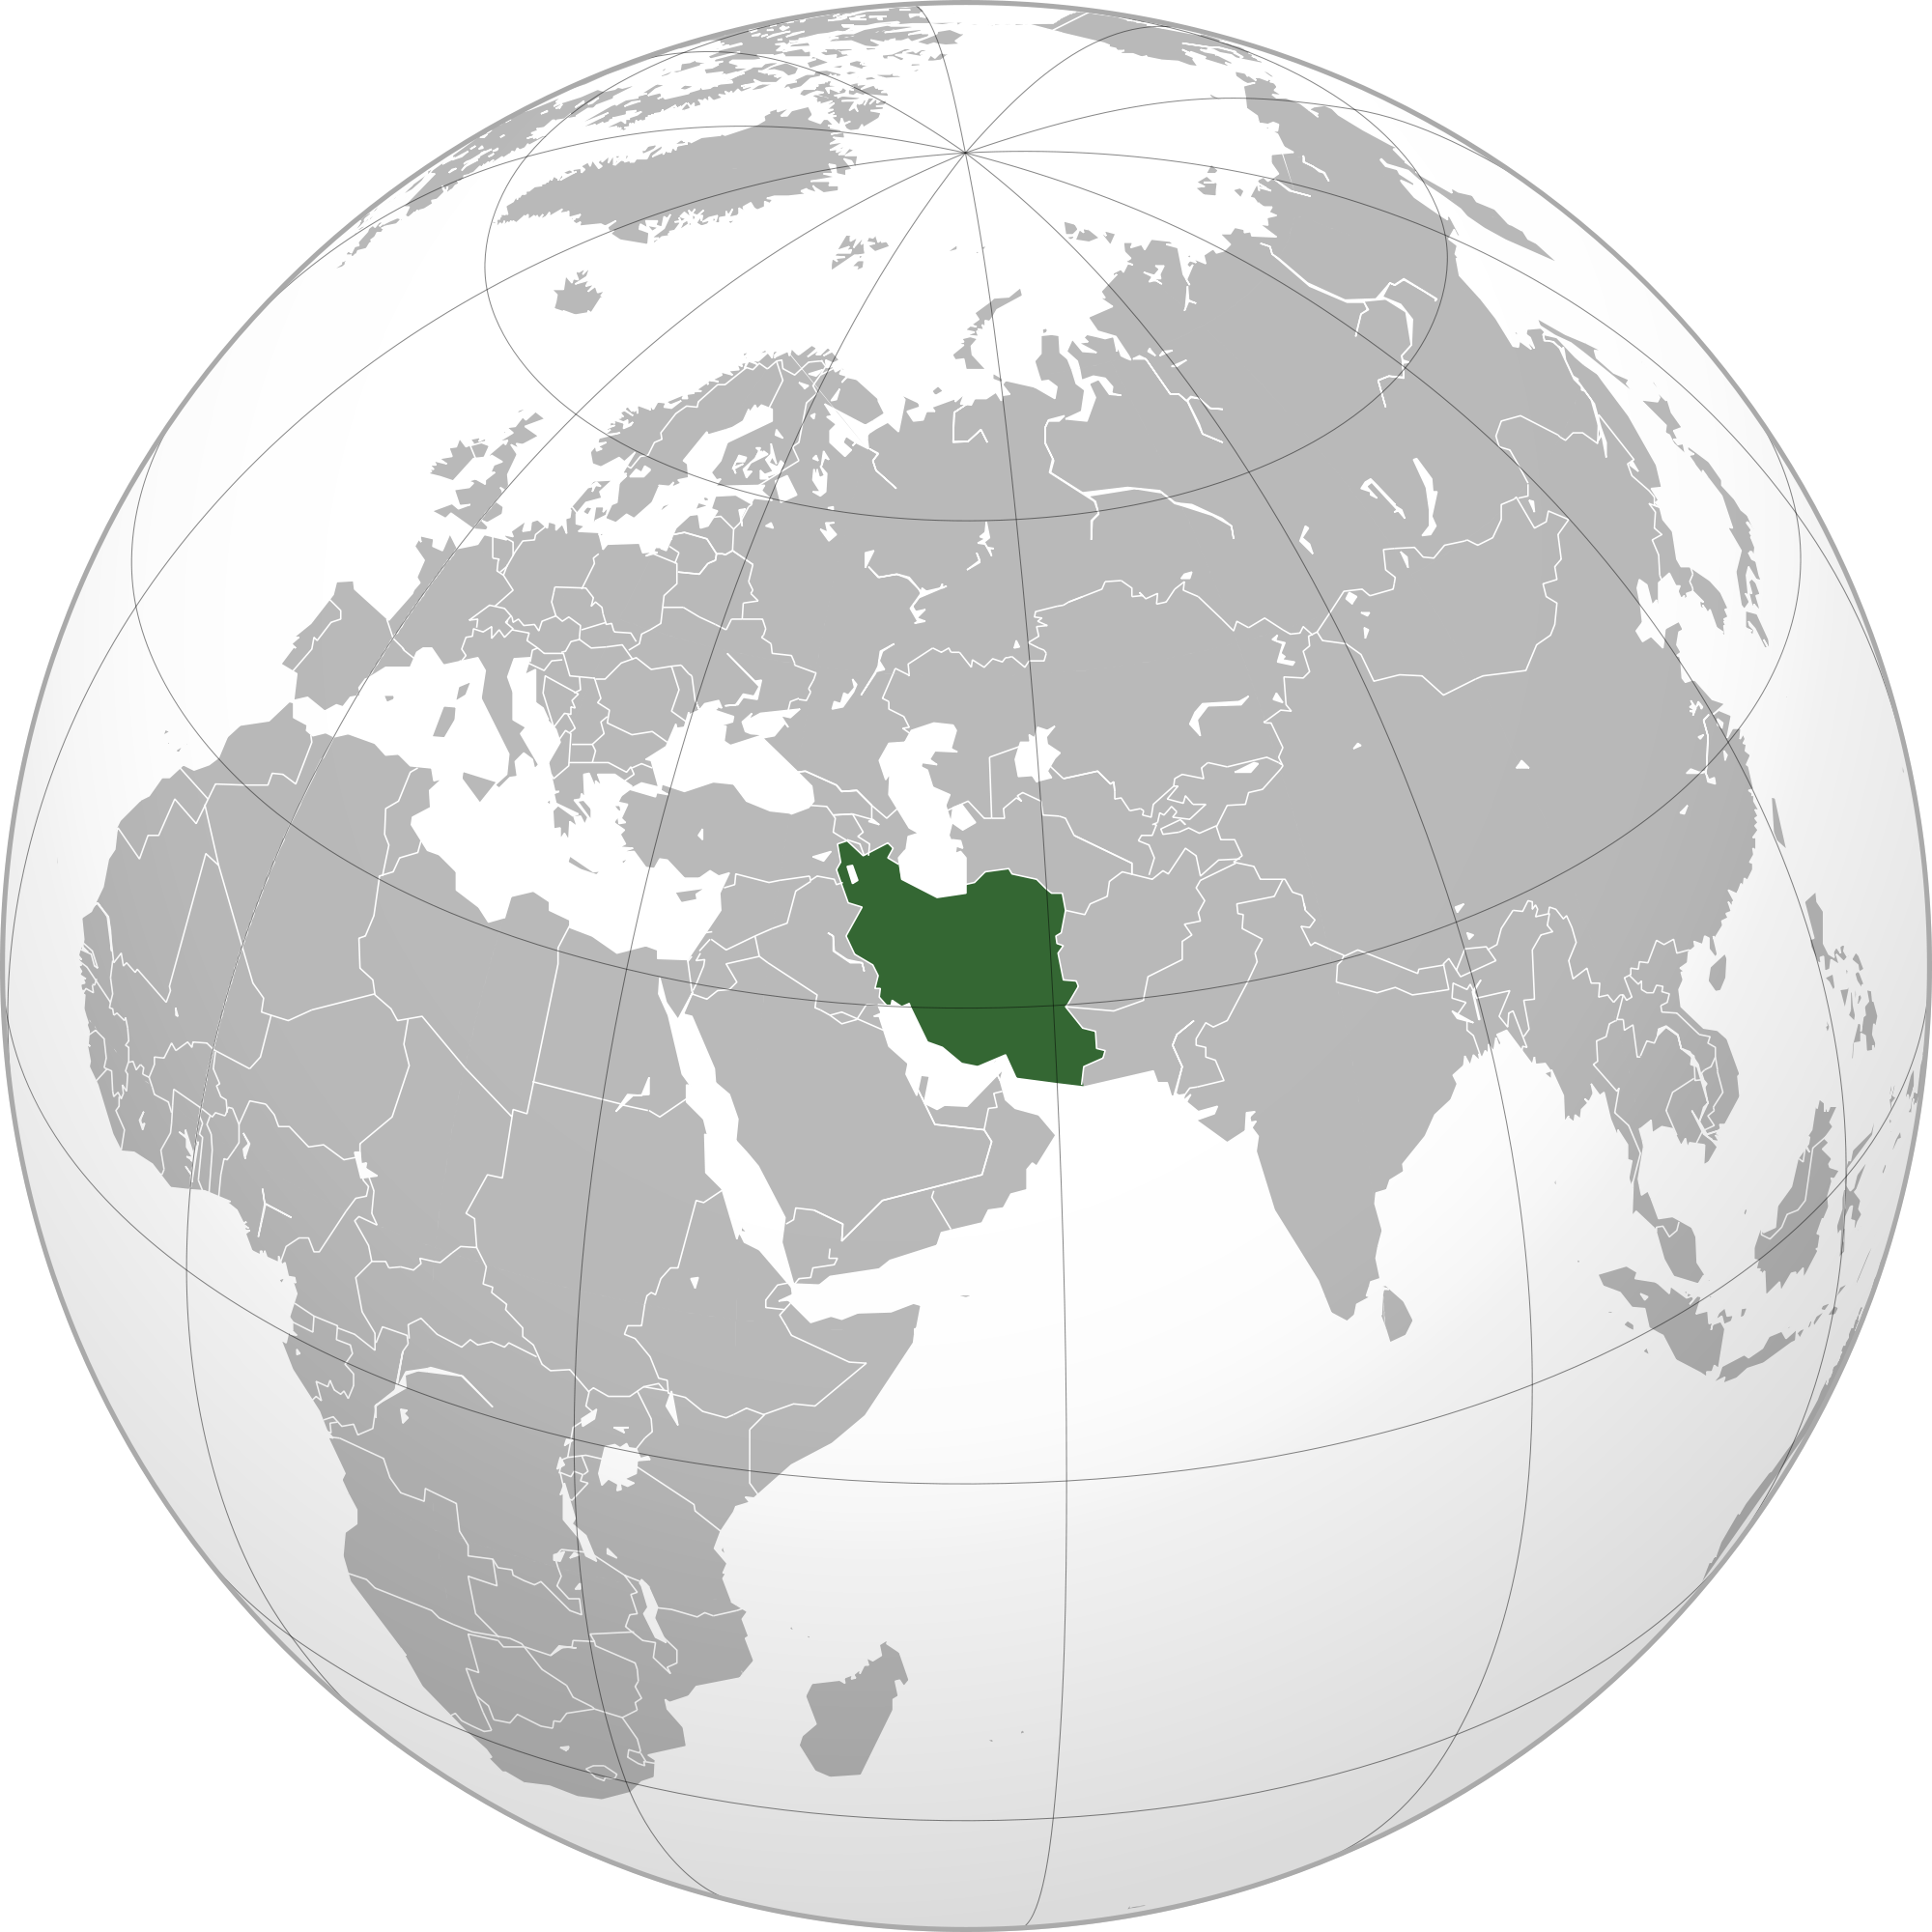 Location of the Iran in the World Map